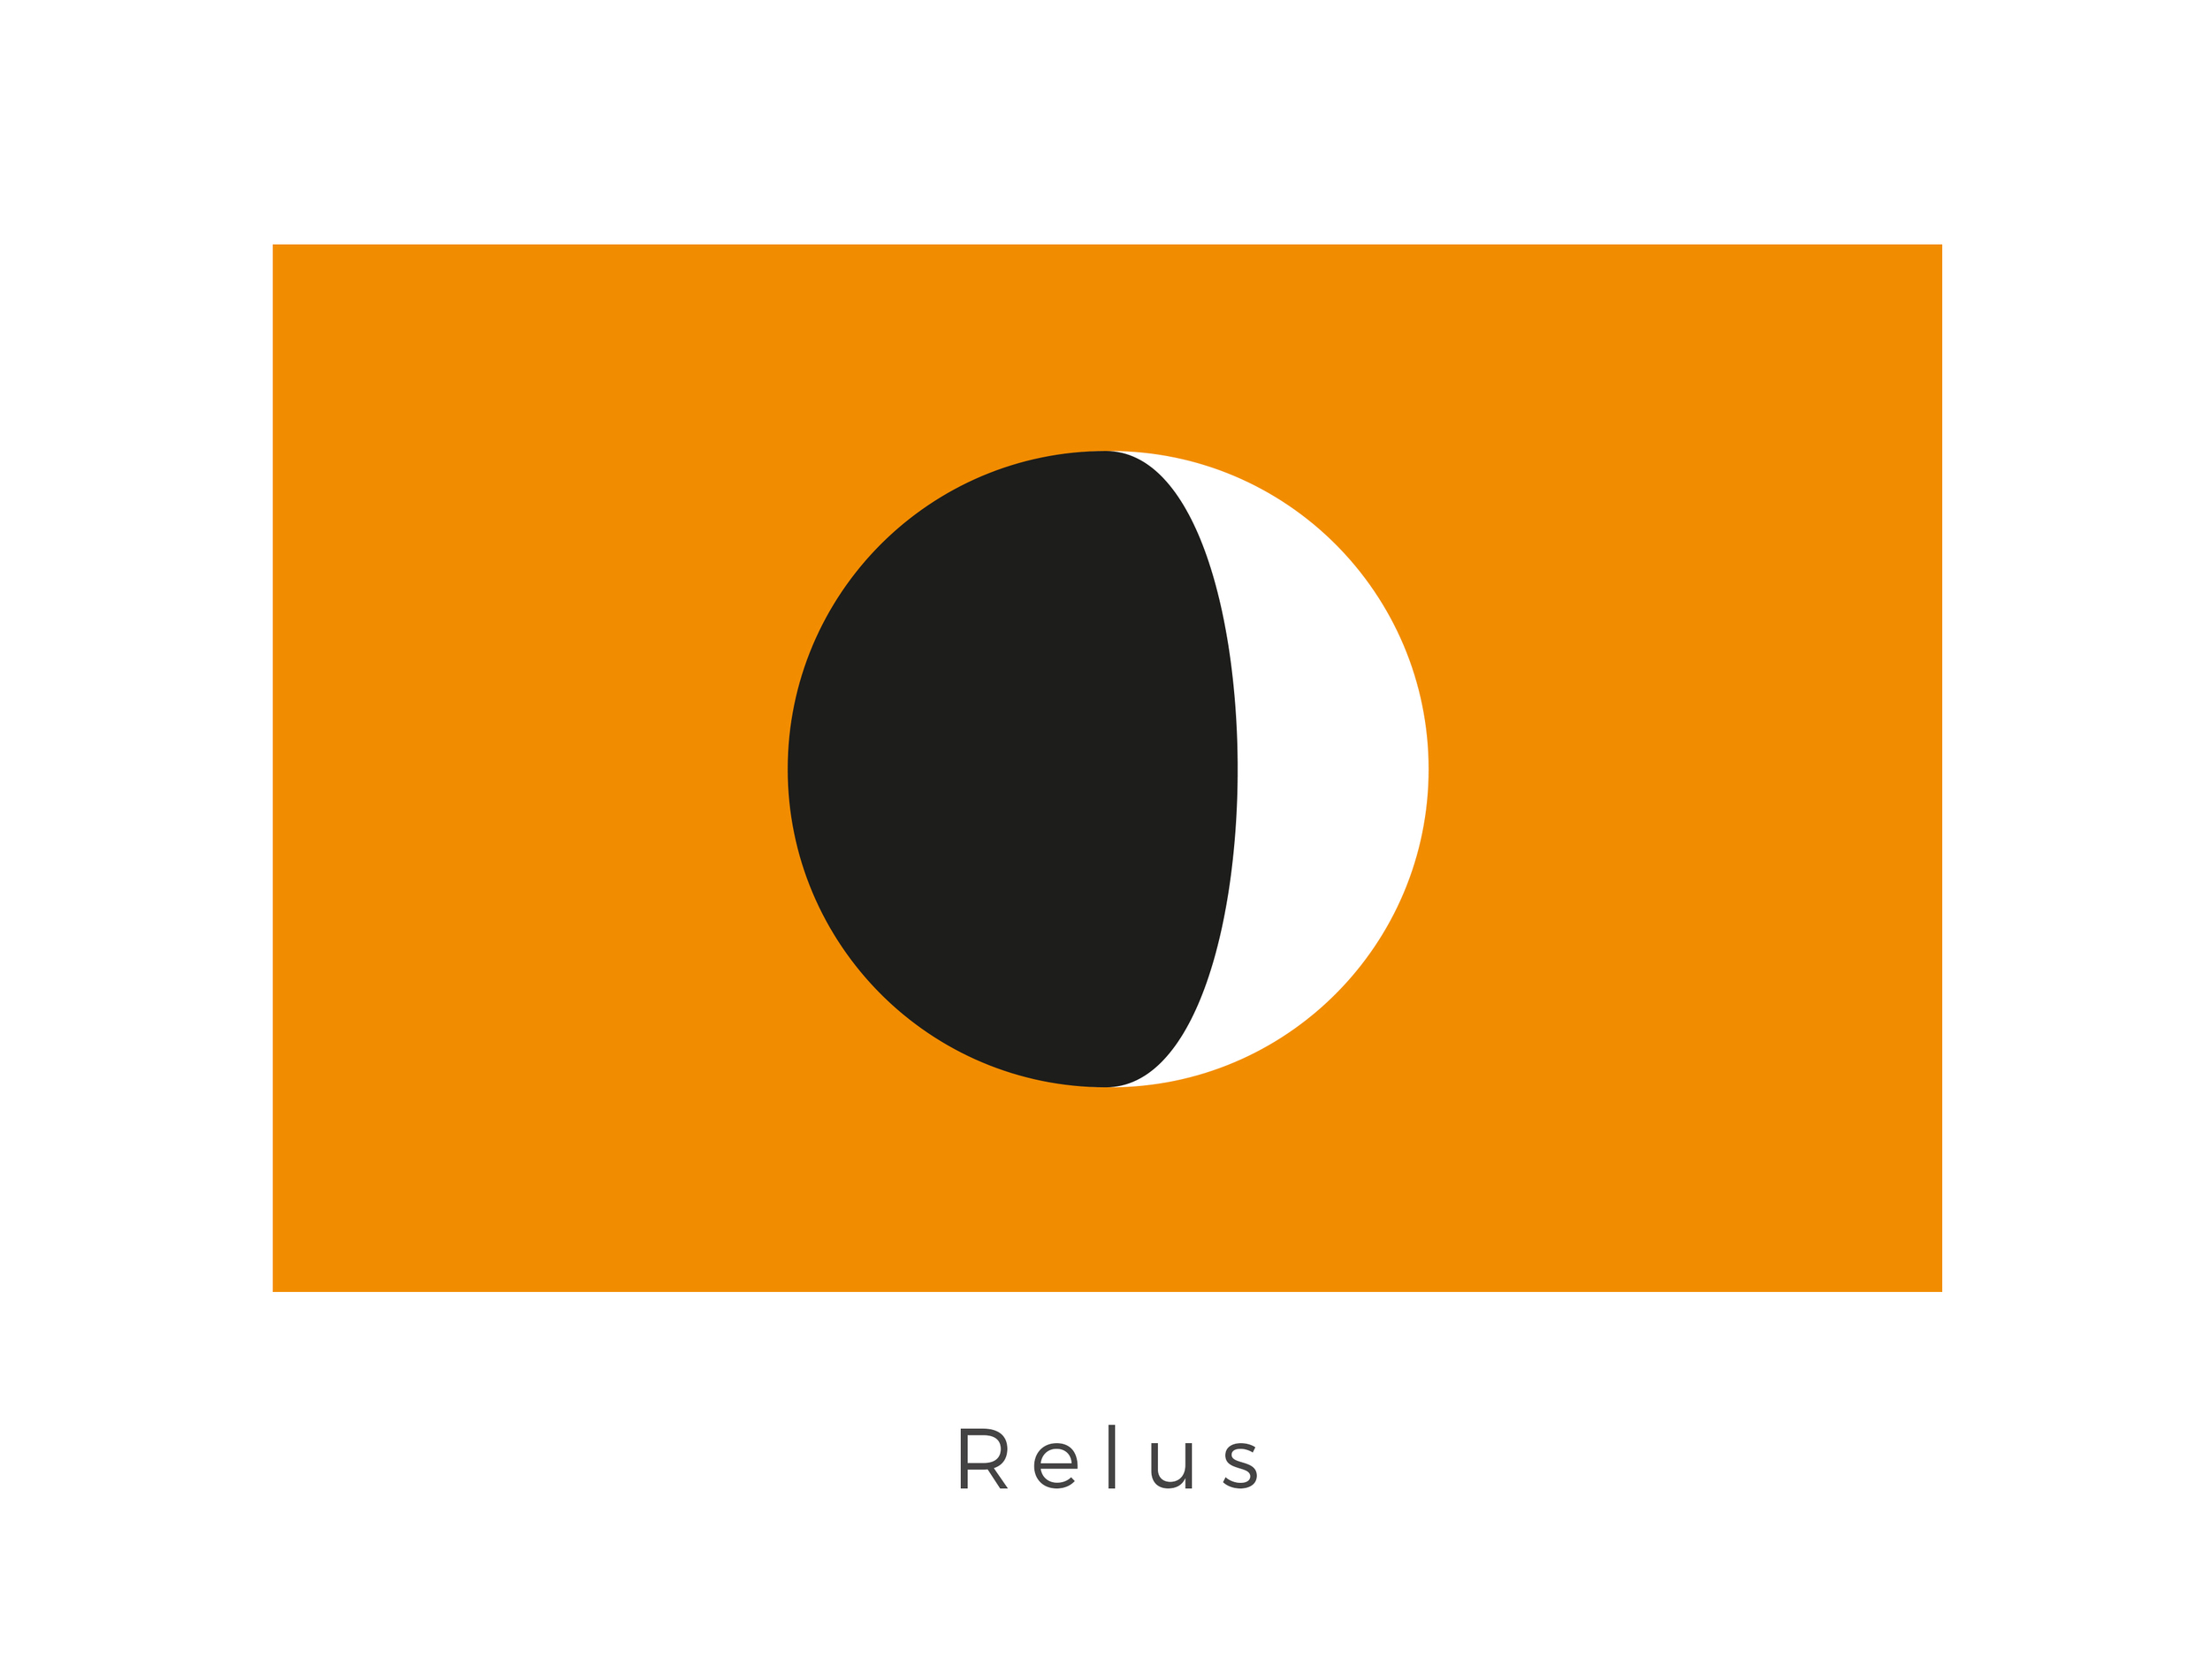 Relus  was the fourth planet of the Beshqek system, located within the Deep Core. It was one of two terrestrial planets in the system and was orbited by a single moon. After the cataclysmic destruction of Relus's neighboring planet, Byss, in 11 ABY, the artificial Byss Run hyperlane connecting the Beshqek system to the Core Worlds began to collapse. The orange of the flag was adopted after the destruction of Byss in a sign of solidarity with its people. The eclipsing orb graphic (common among flag designs of the galaxy) is black and white, the traditional colours of Relus.